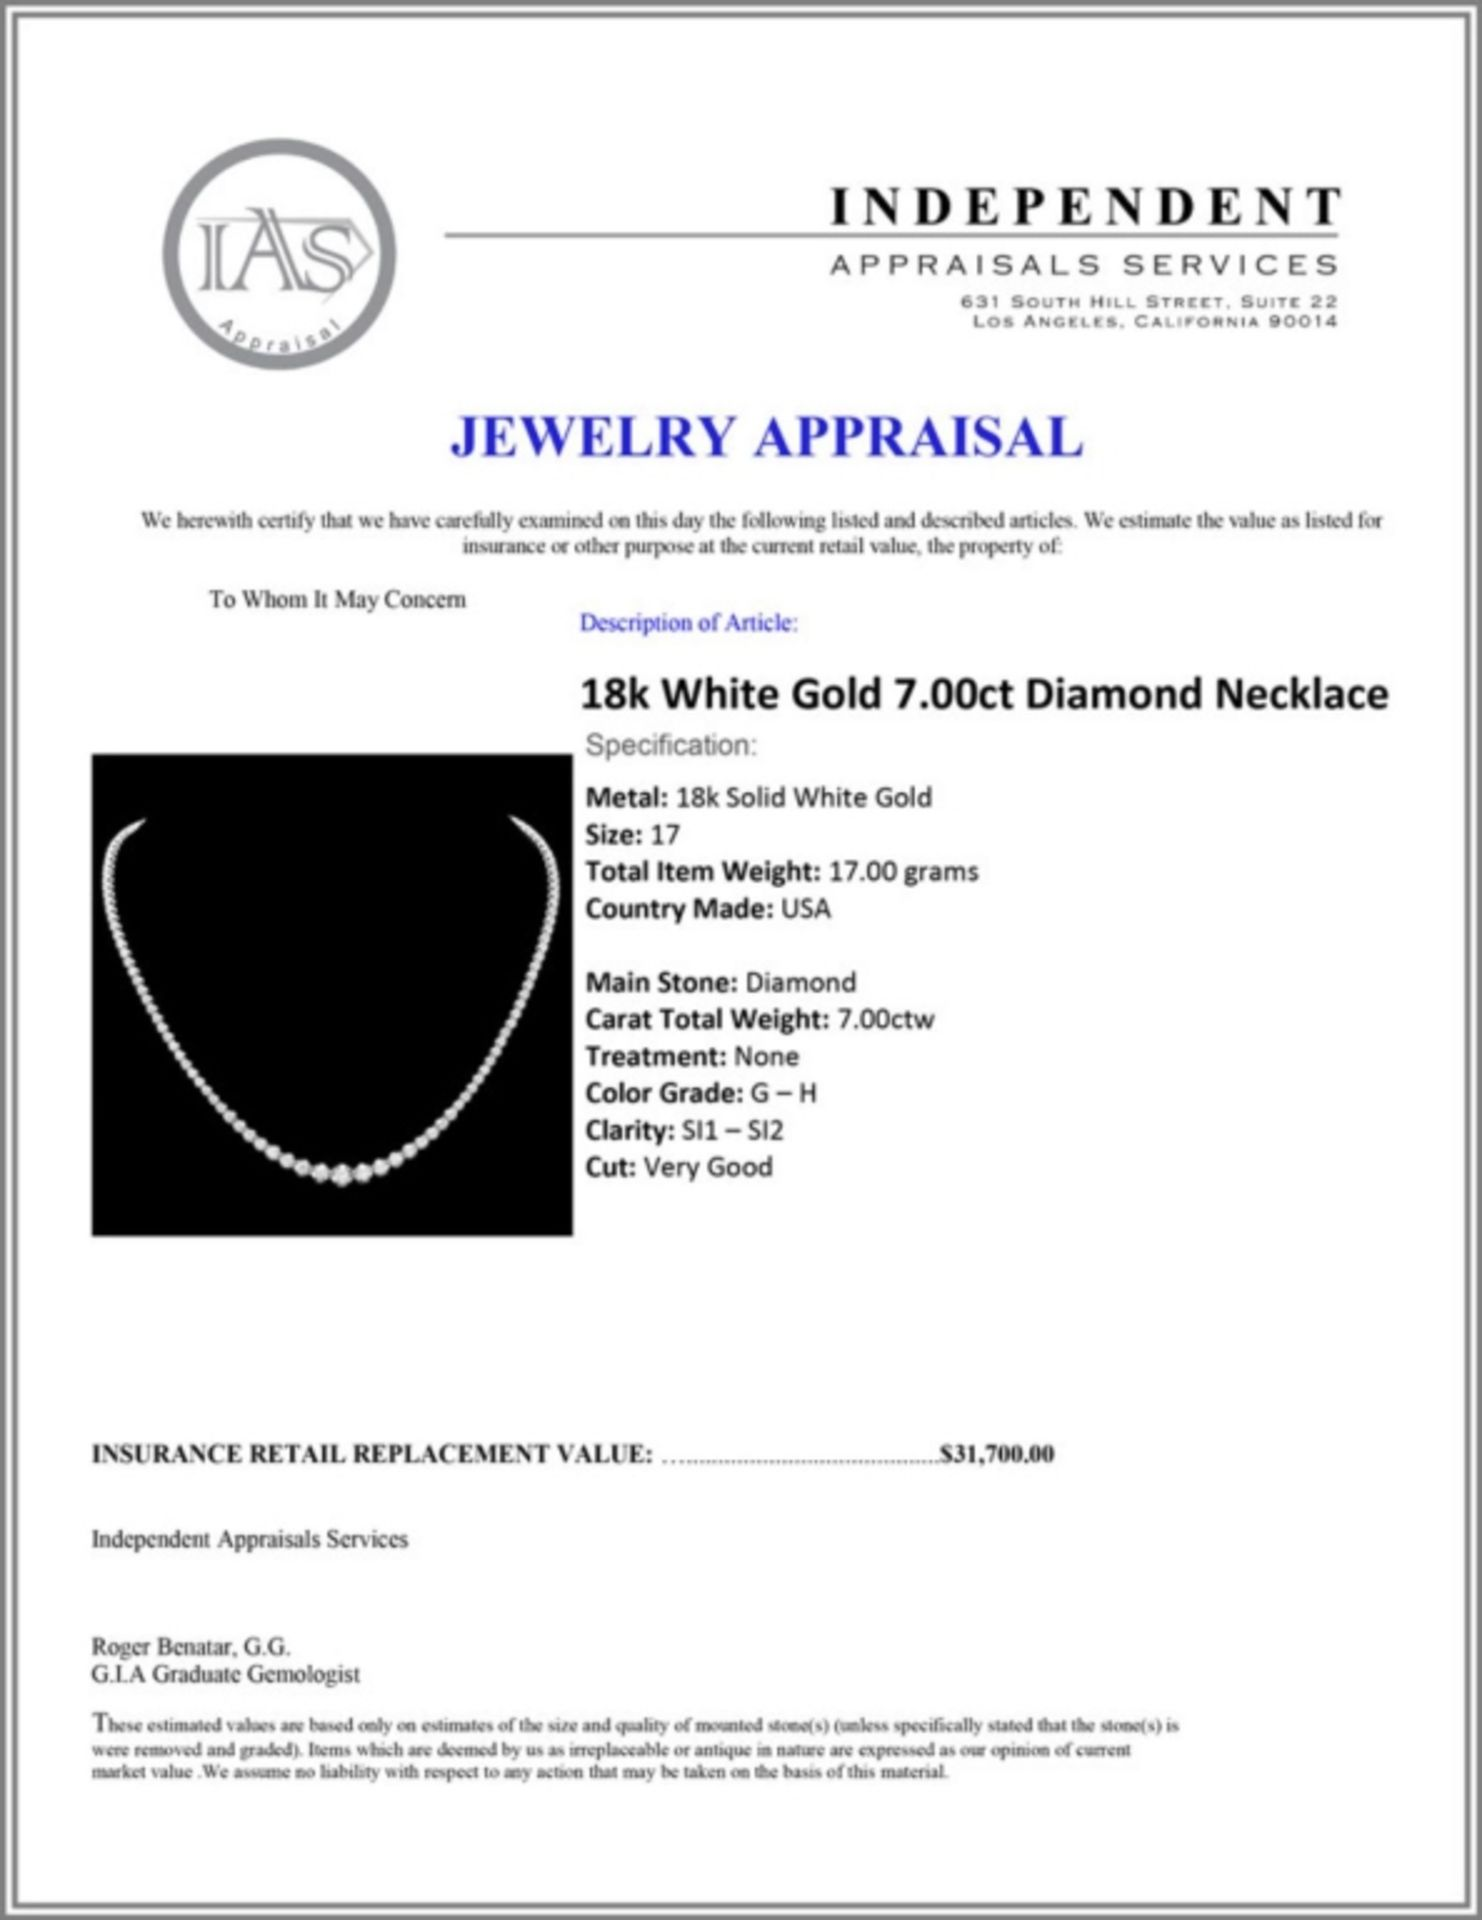 ^18k White Gold 7.00ct Diamond Necklace - Image 3 of 3